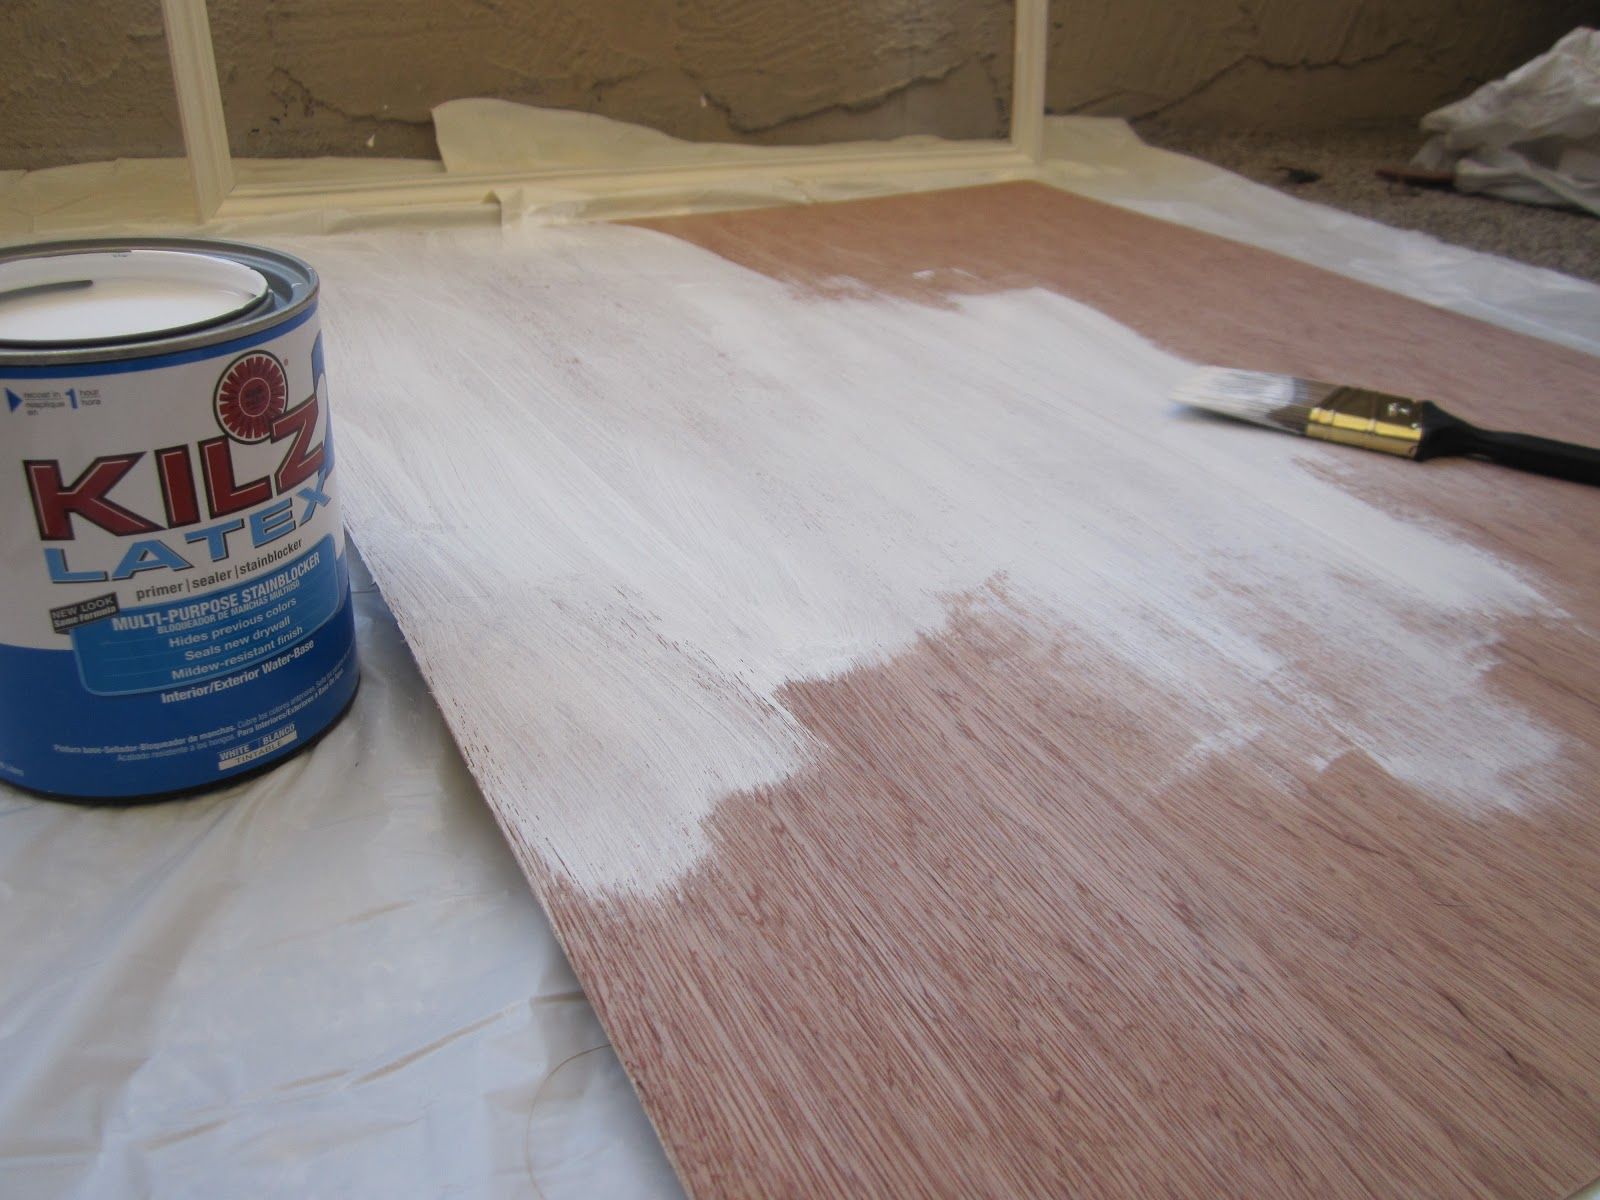 Home depot paint thinner home painting ideas - Home depot paint design ideas ...